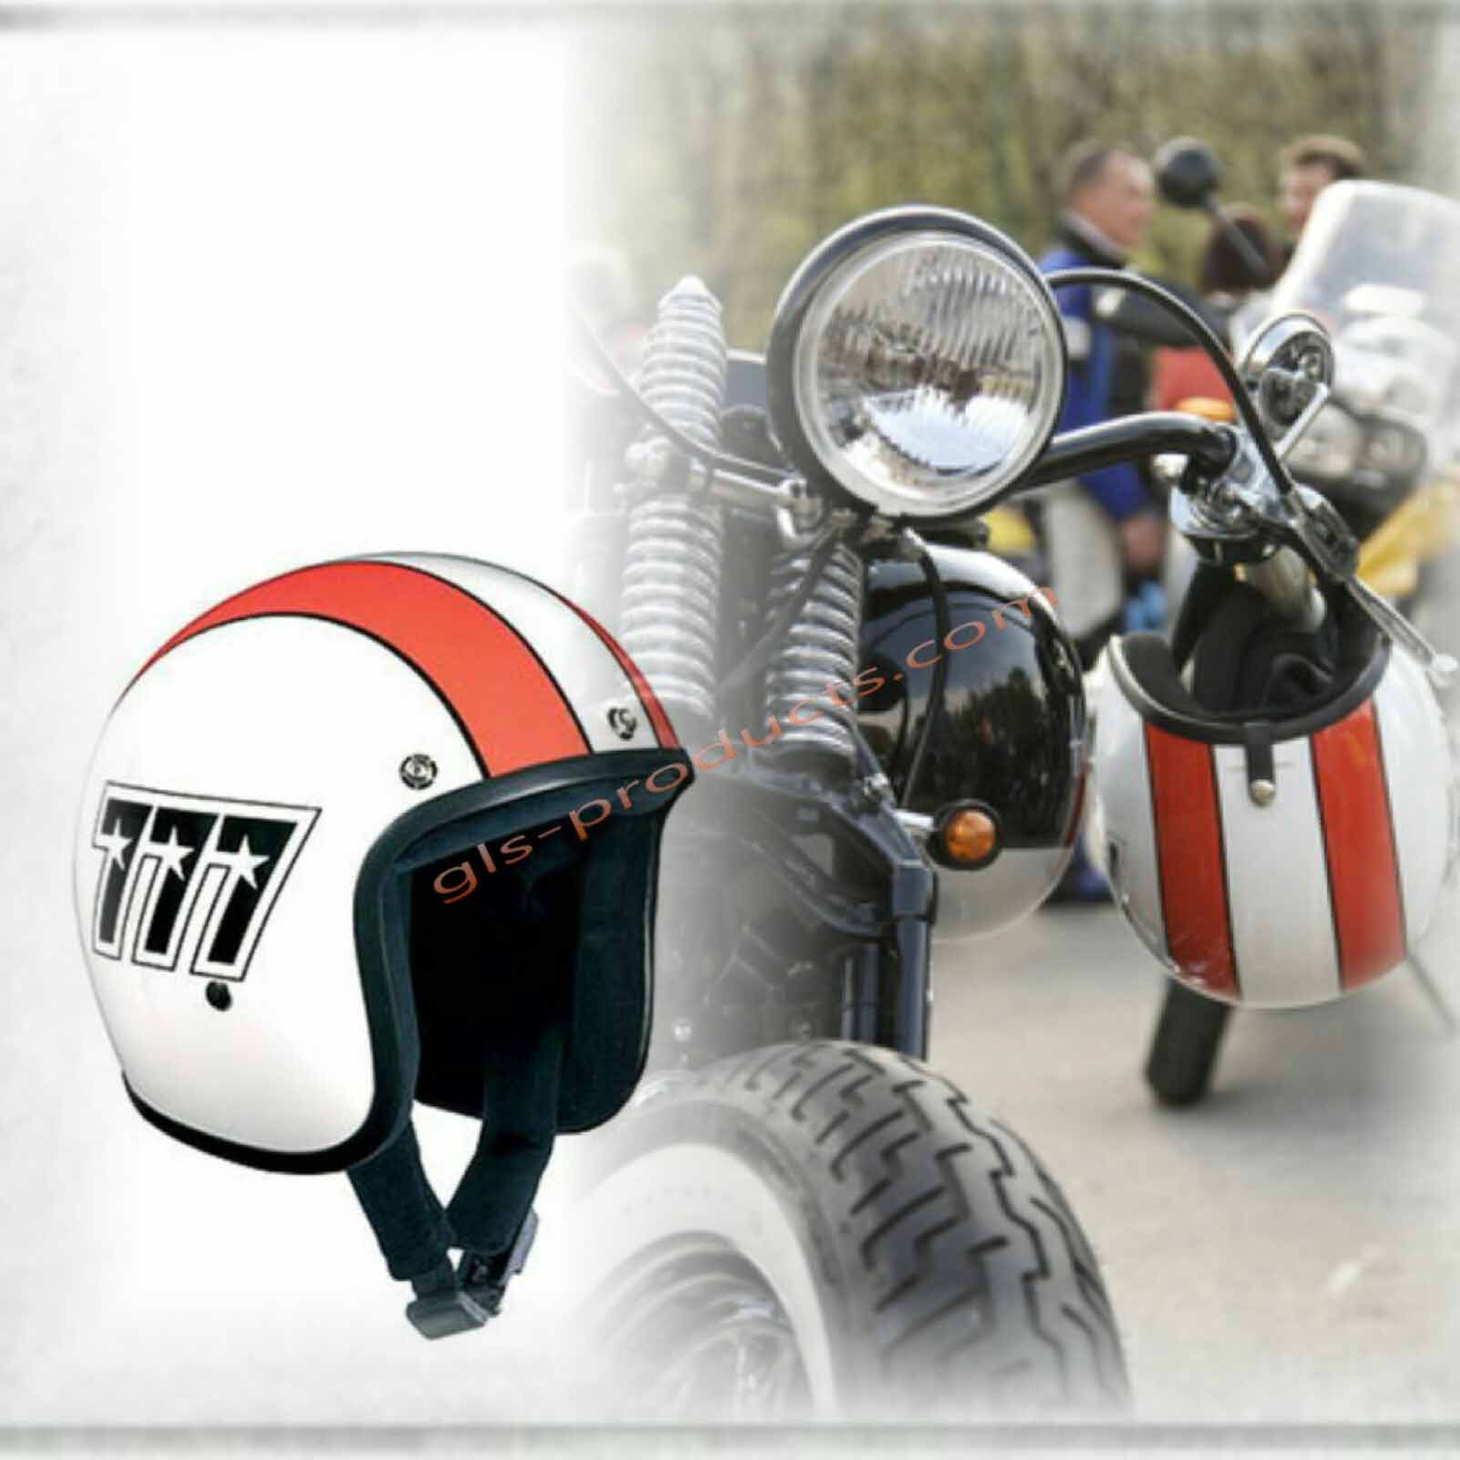 Bandit 777 Original Jet Helmet - Motorcycle Helmet In Classic Design – Picture 8